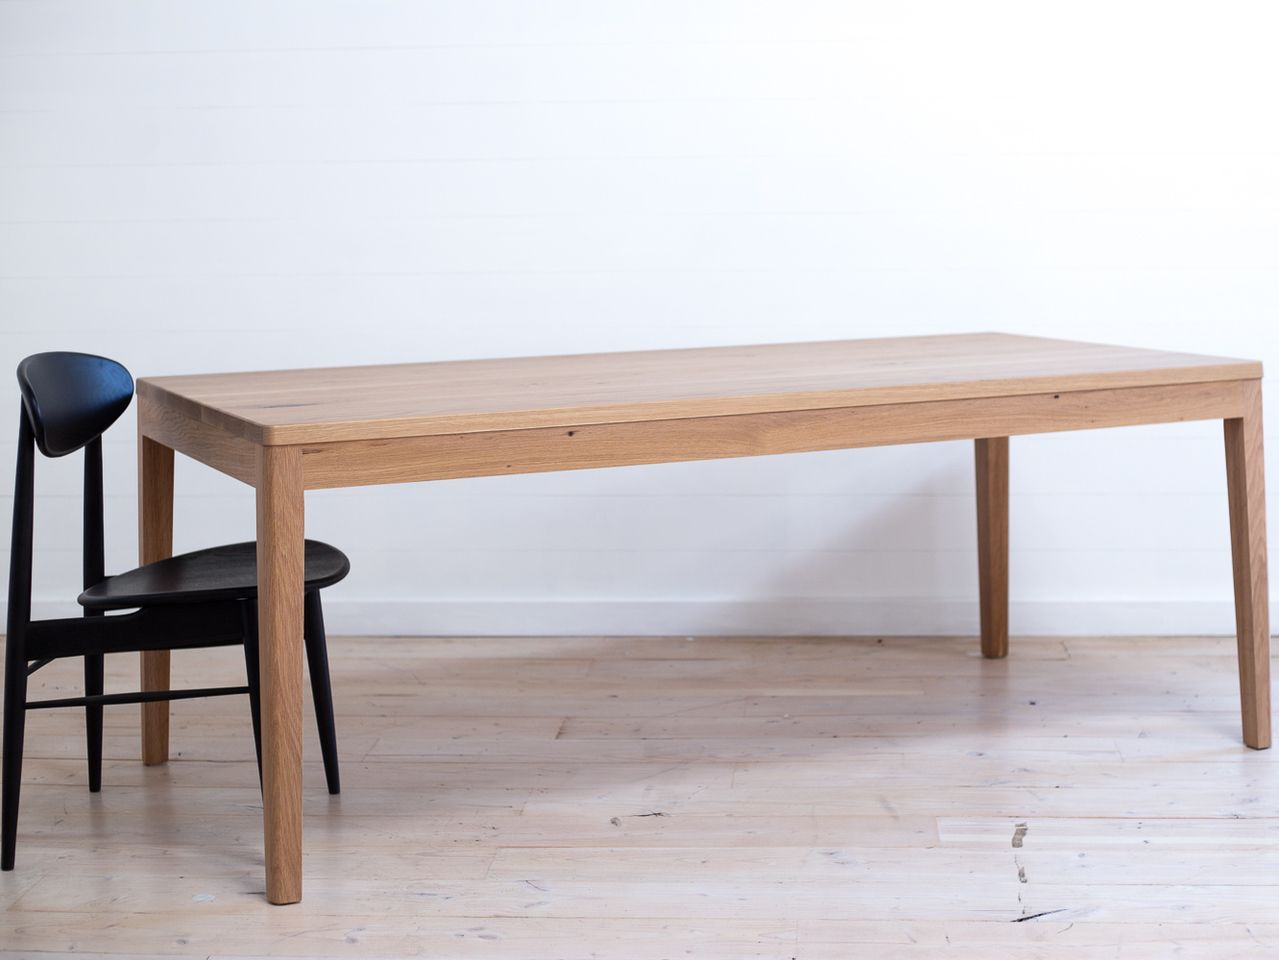 Mayfield American White Oak Dining Table By Retrograde Furniture Made Of Solid